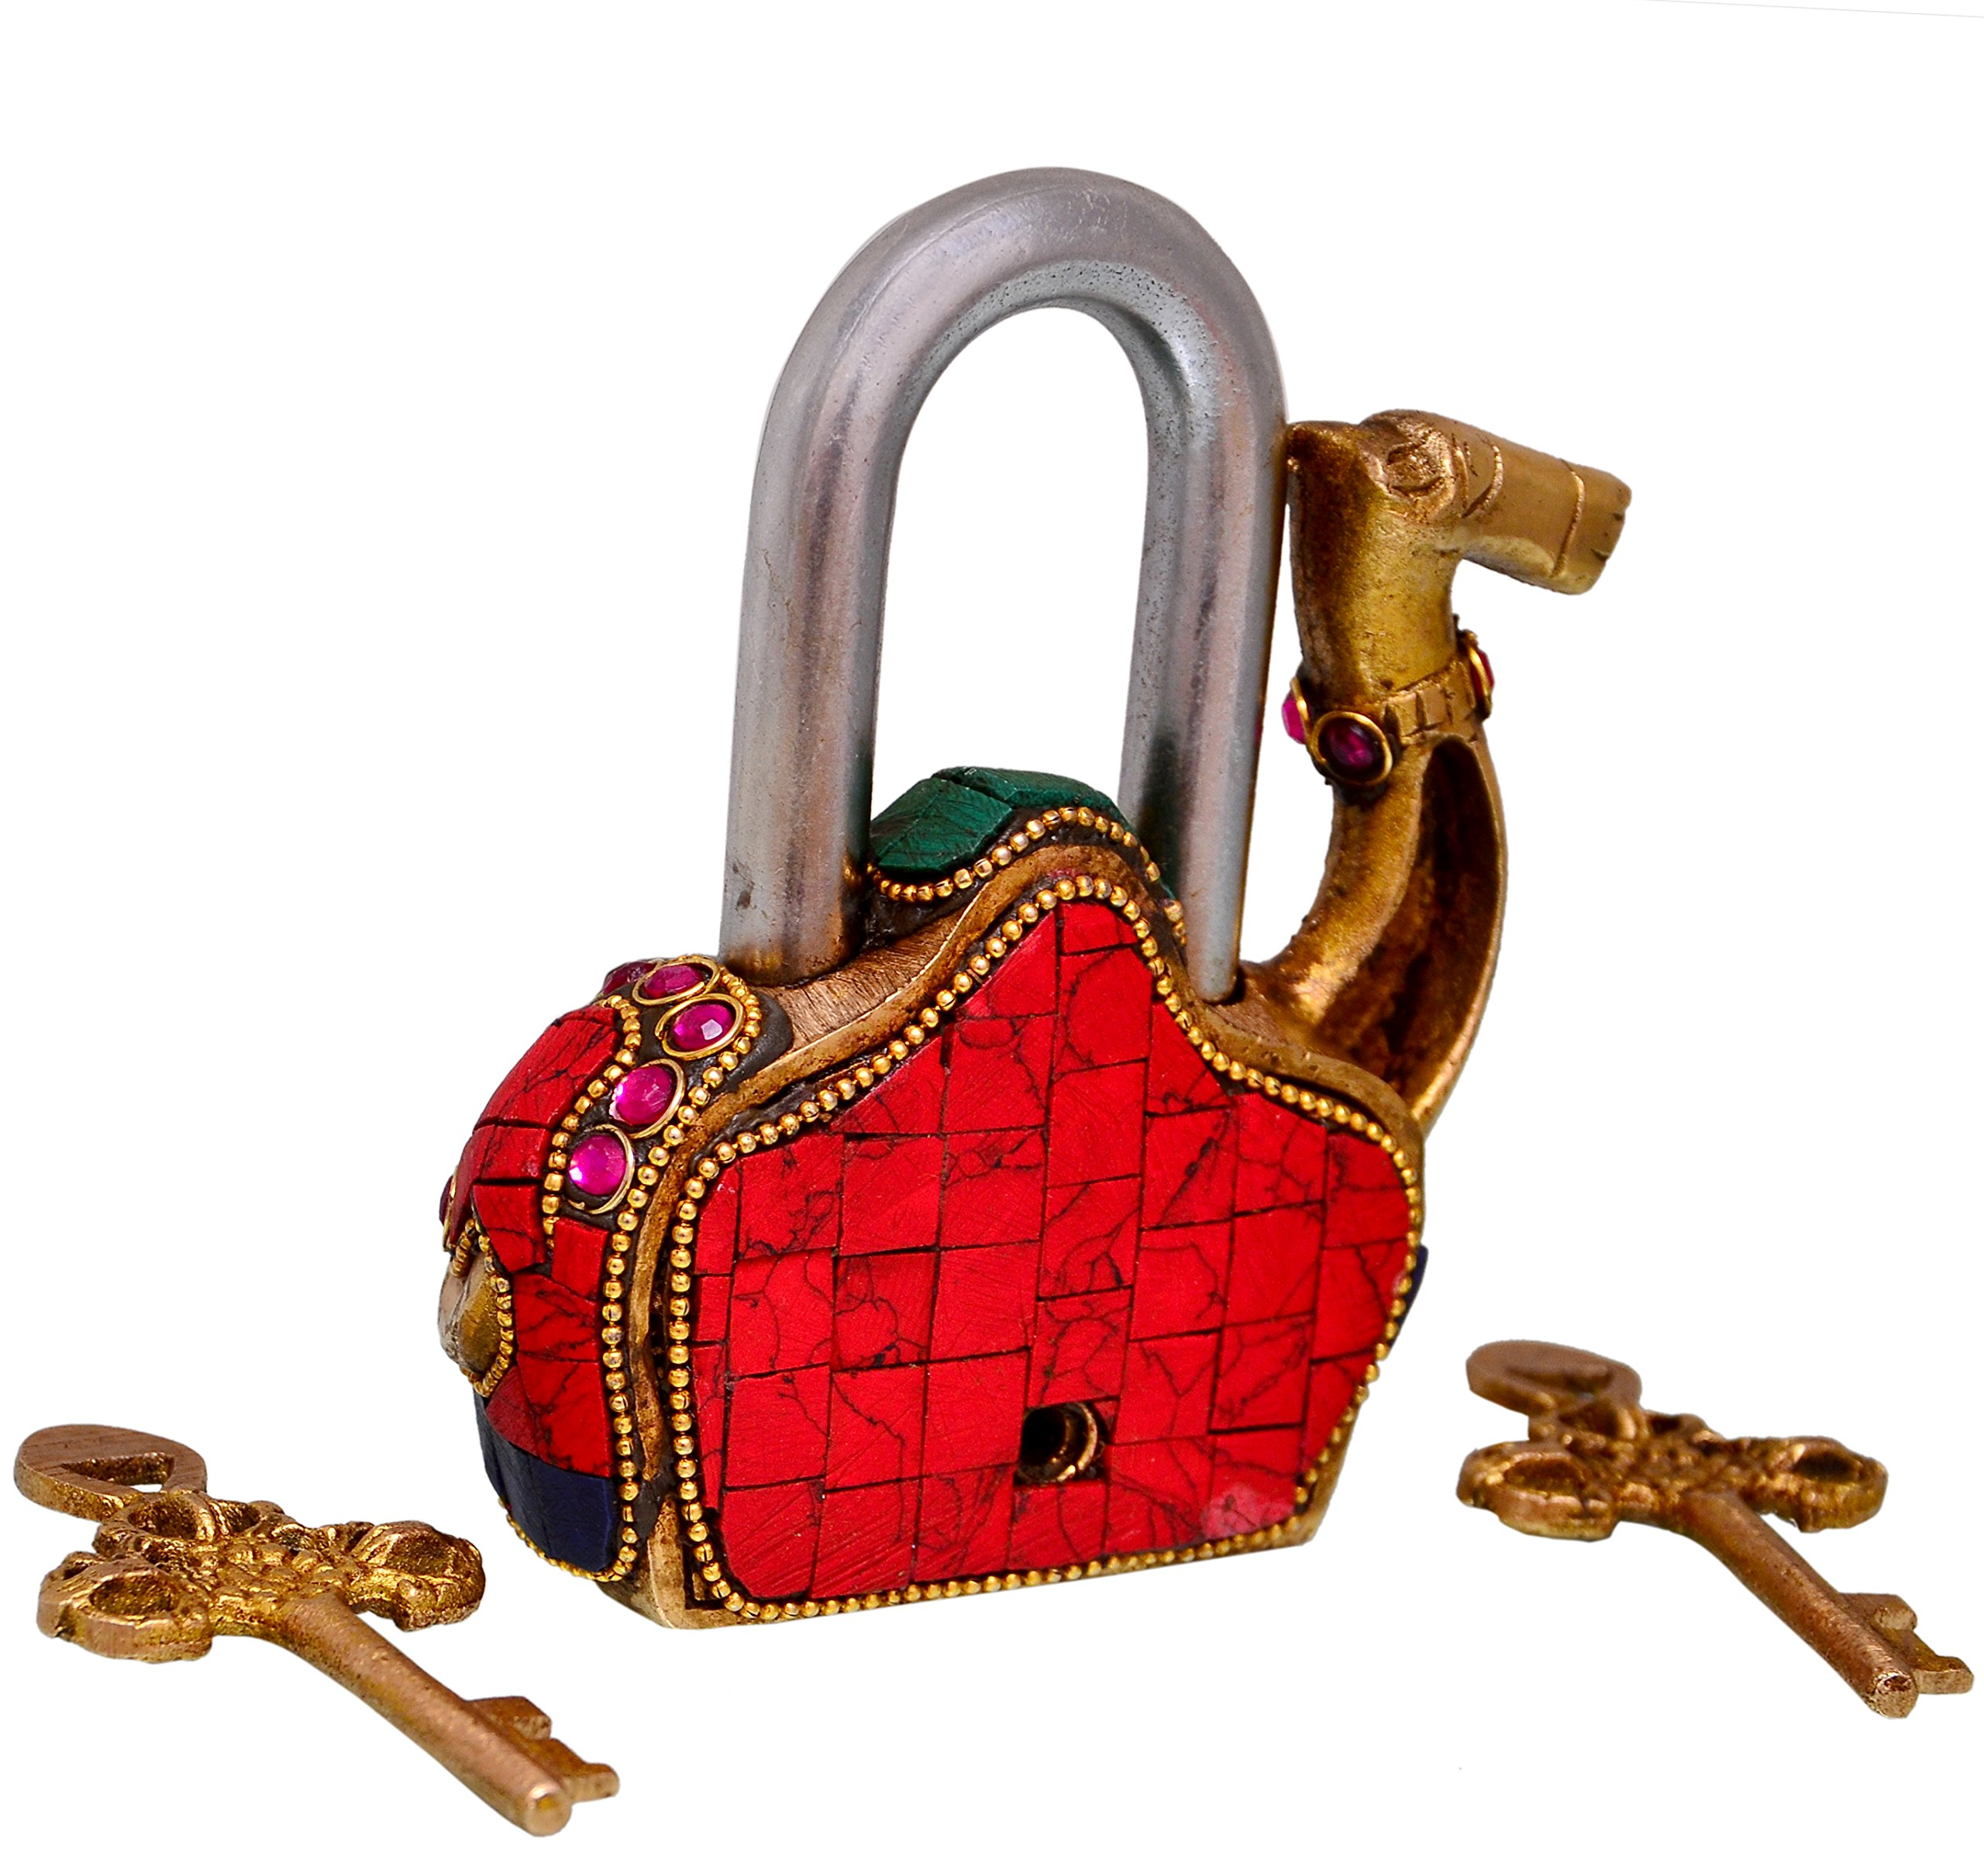 Purpledip Camel Shaped Brass Lock Padlock: Handmade Antique Design With Colorful Gemstone Work; Unique Collectible Combination Of Style & Security (10685) by purpledip (Image #3)